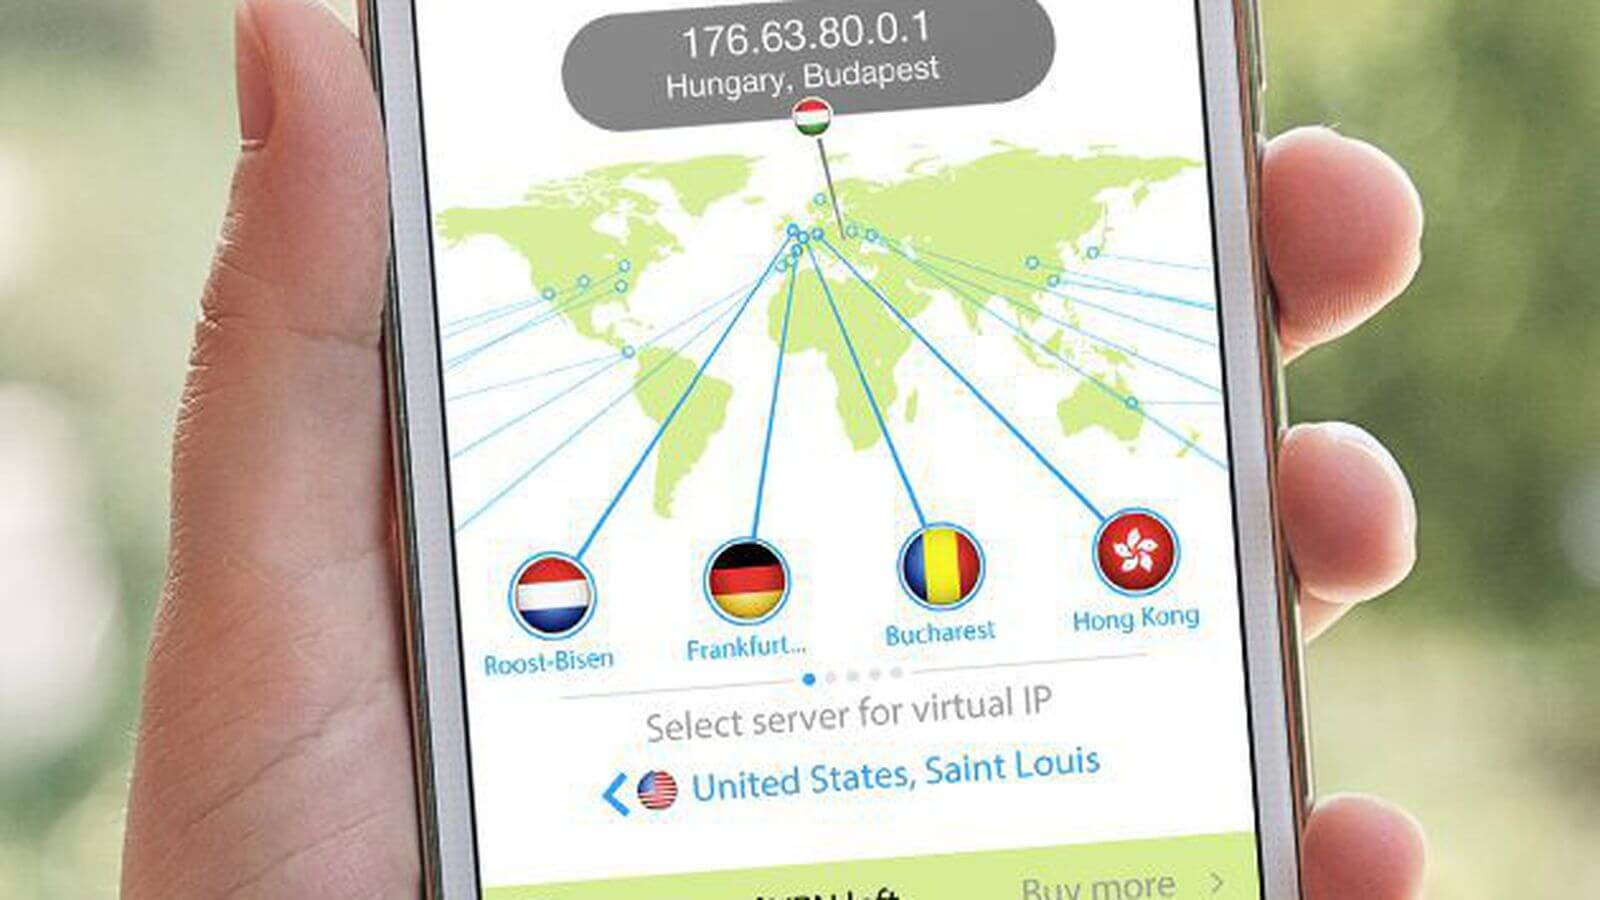 vpn-unlimited-on-phone